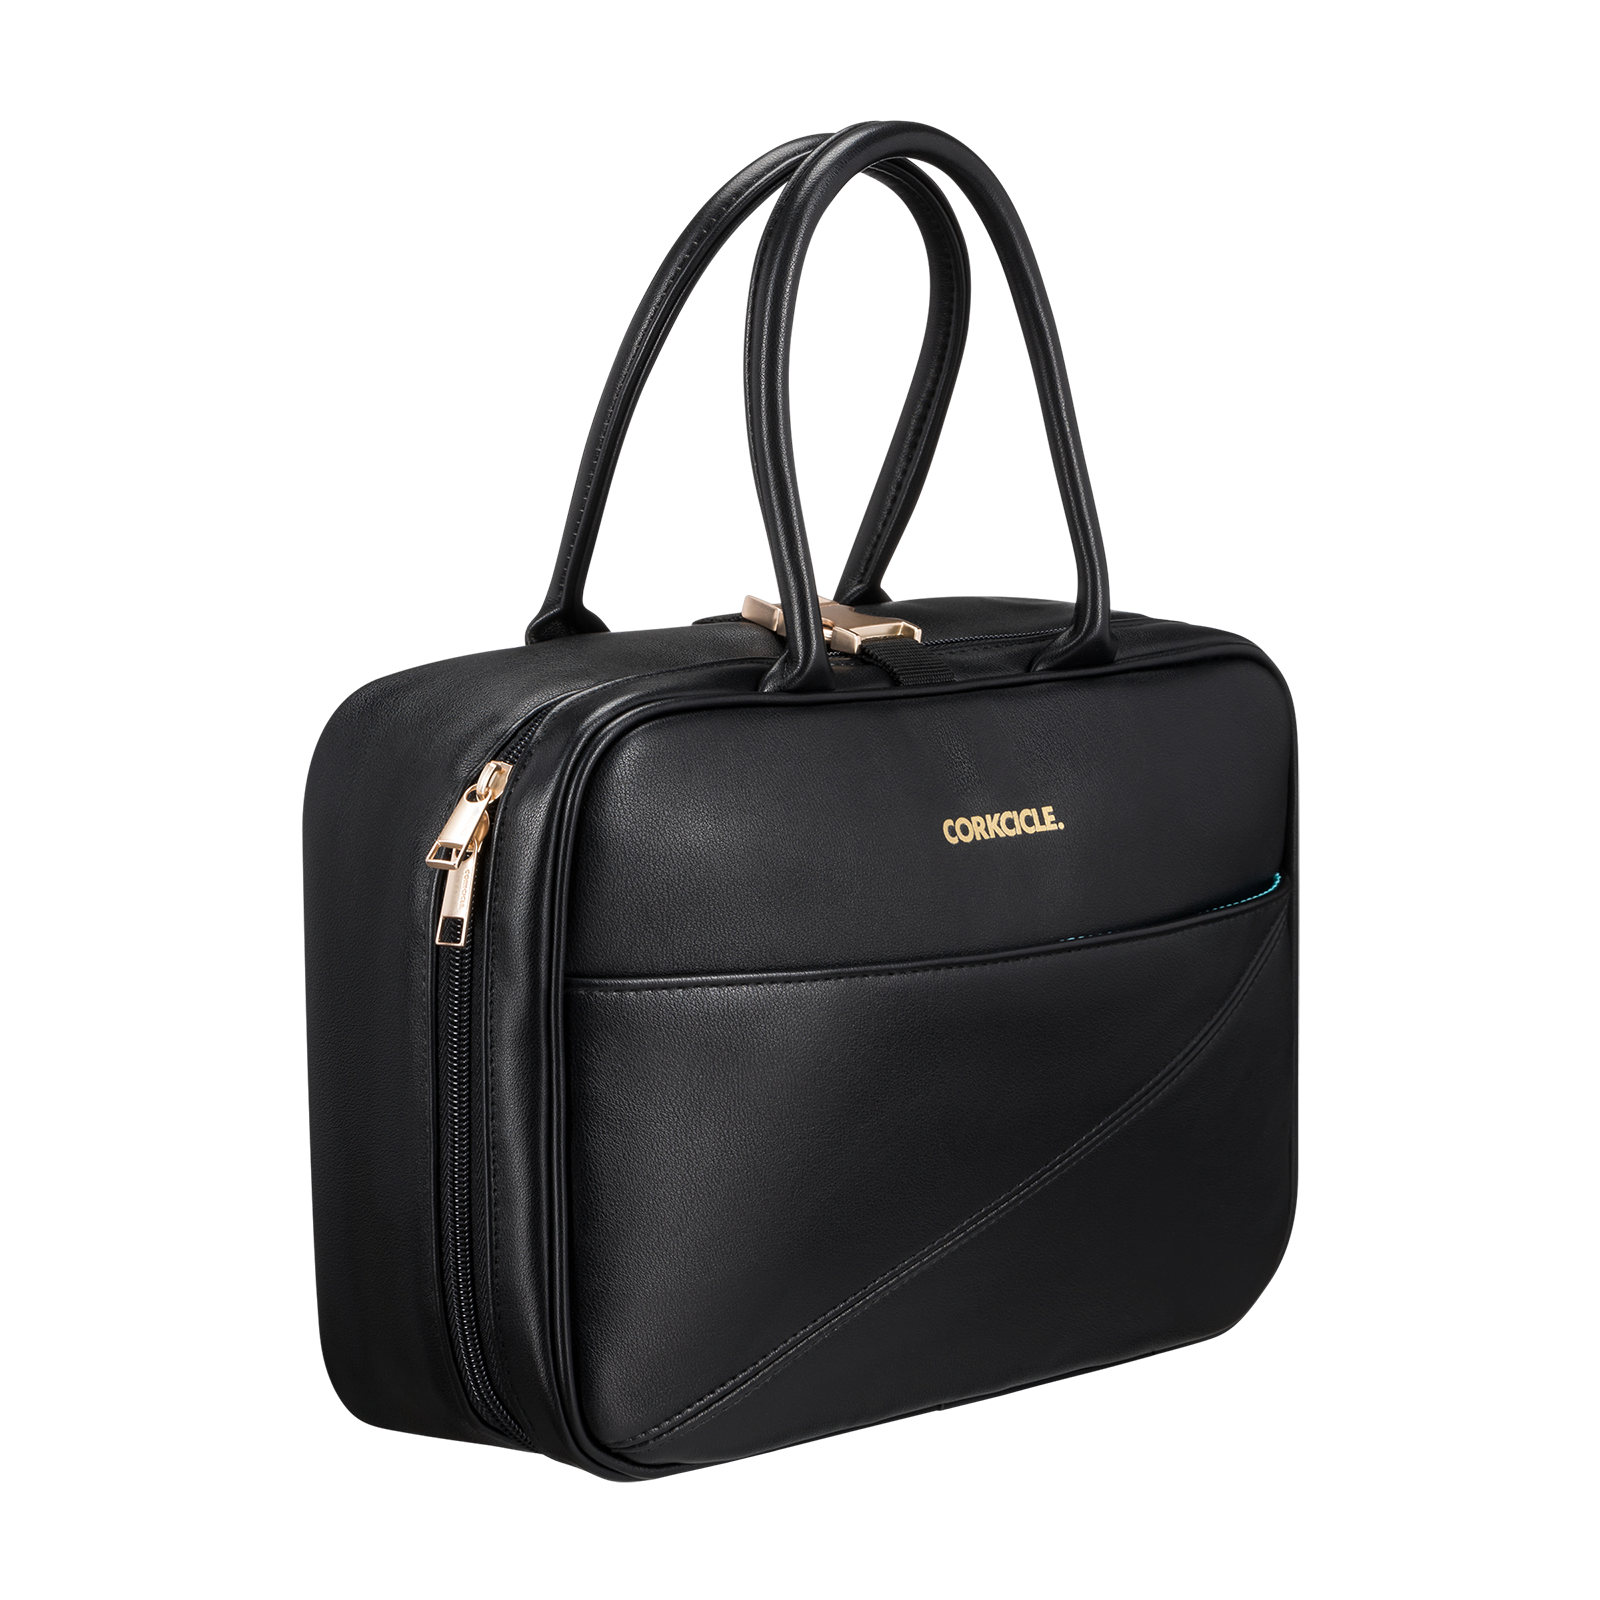 Black handbag product photo